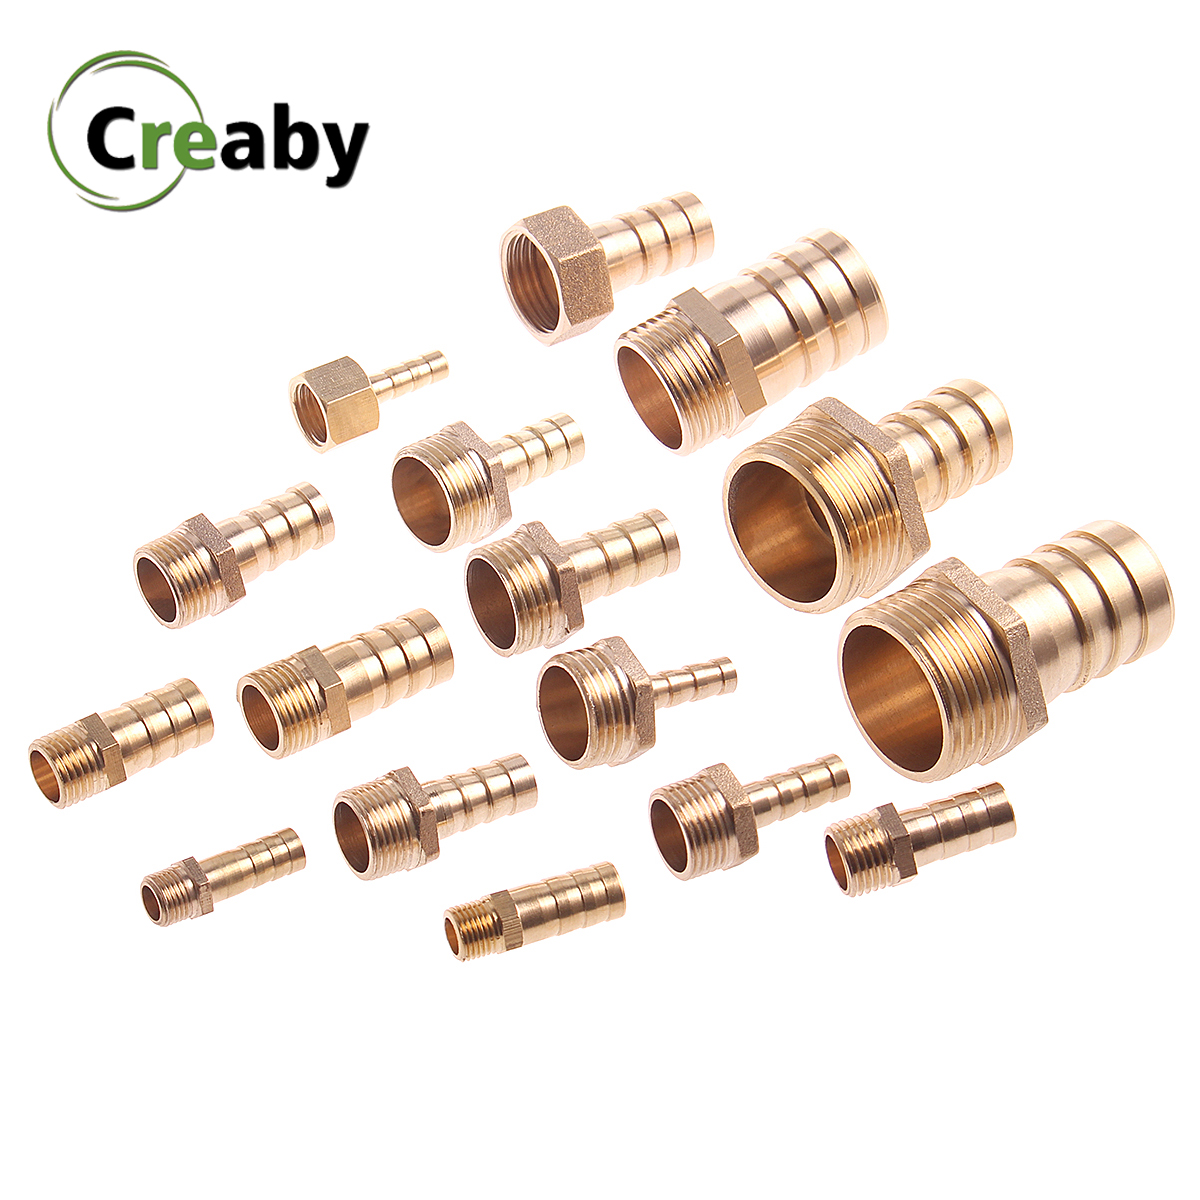 Brass Pipe Fitting 6mm - 25mm 8 10mm Hose Barb Tail 1/8